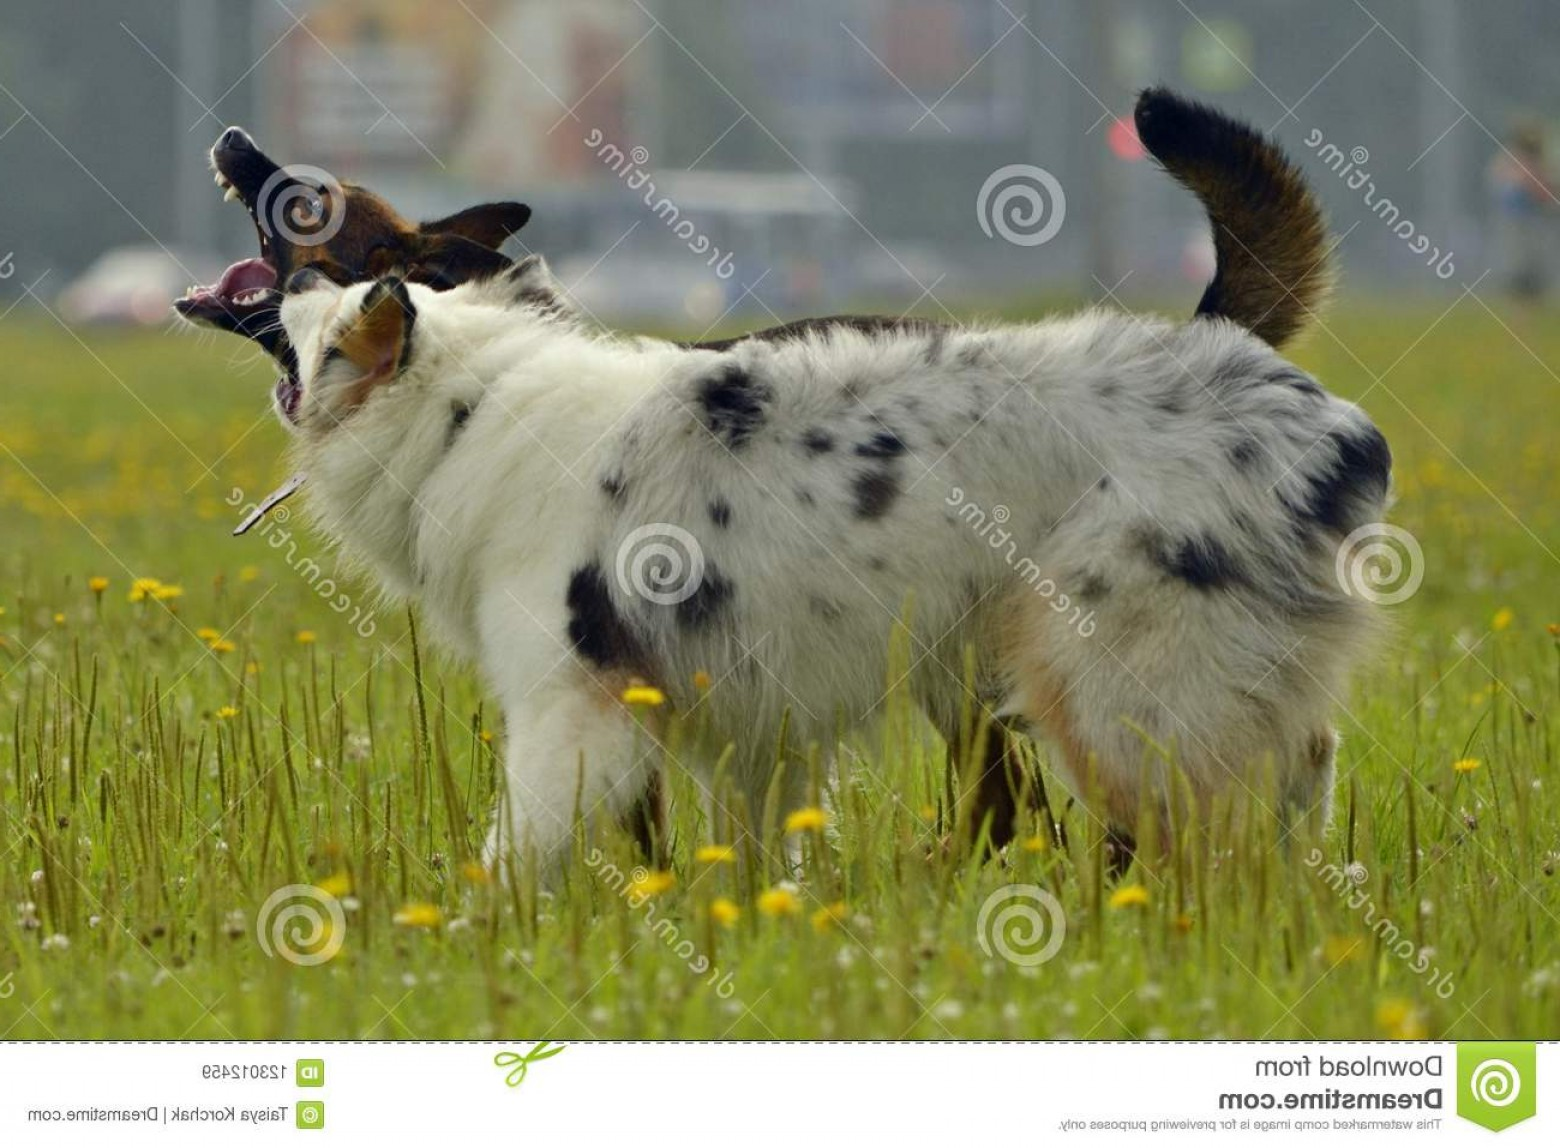 Australian Shepherd Walking Vector: Dogs Play Each Other How To Protect Your Dog Overheating Training Dogs Young Energetic Dog Walk Dogs Play Image